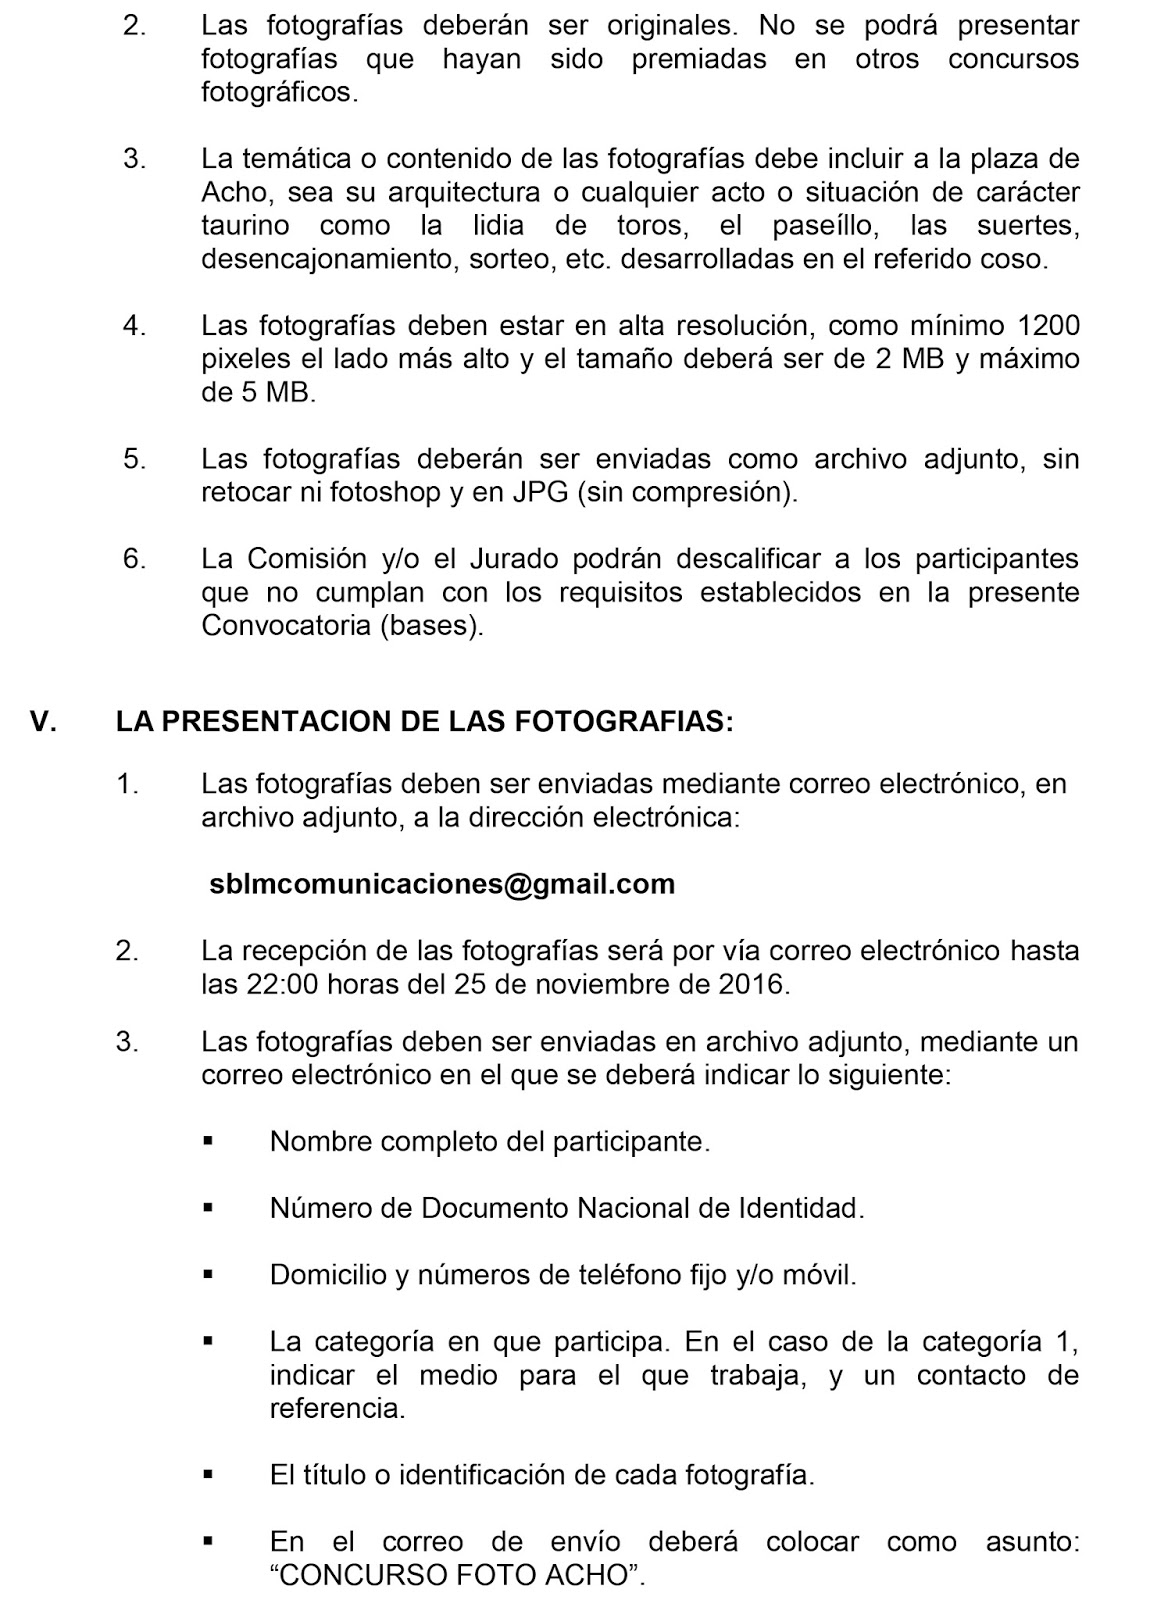 El taurino de lima convocatoria bases concurso de for Sep convocatoria plazas 2016